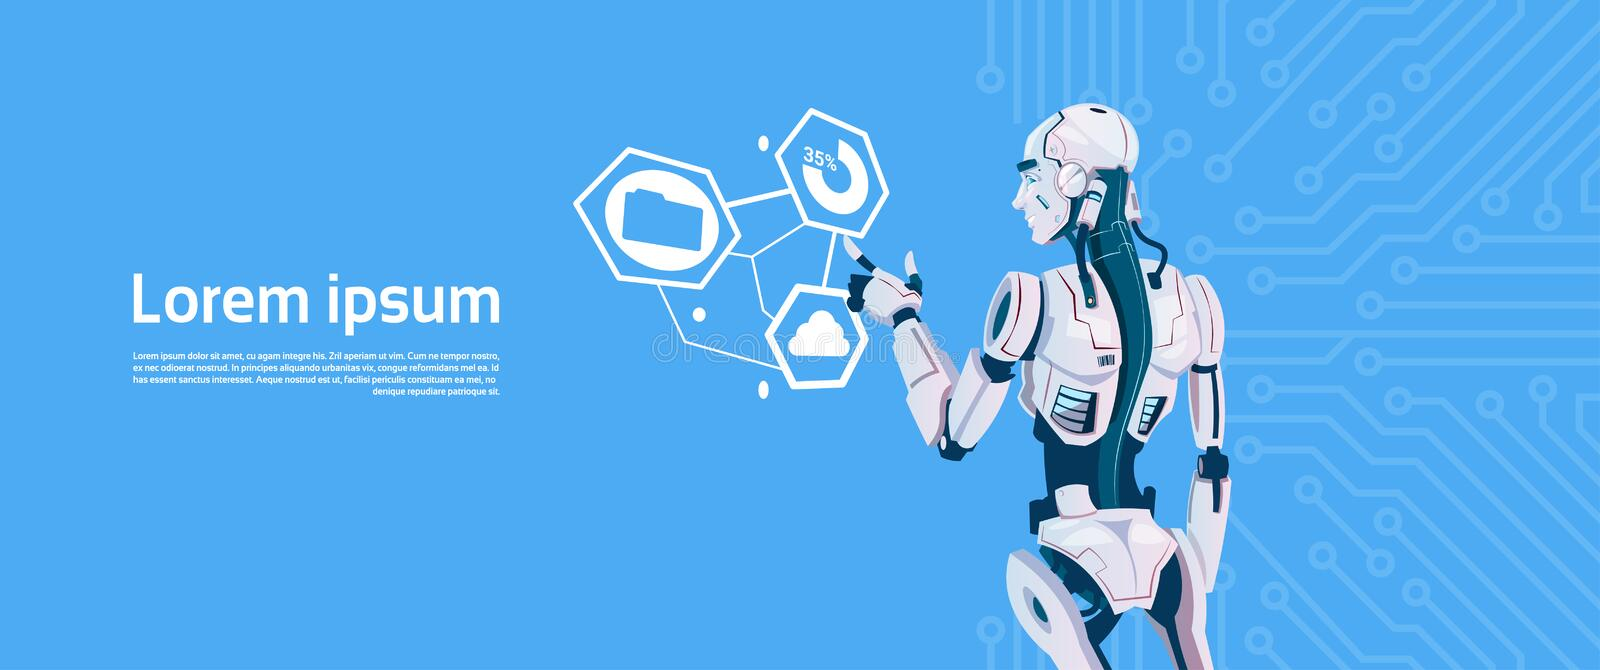 Modern Robot Using Digital Touchscreen Monitor, Futuristic Artificial Intelligence Mechanism Technology stock illustration